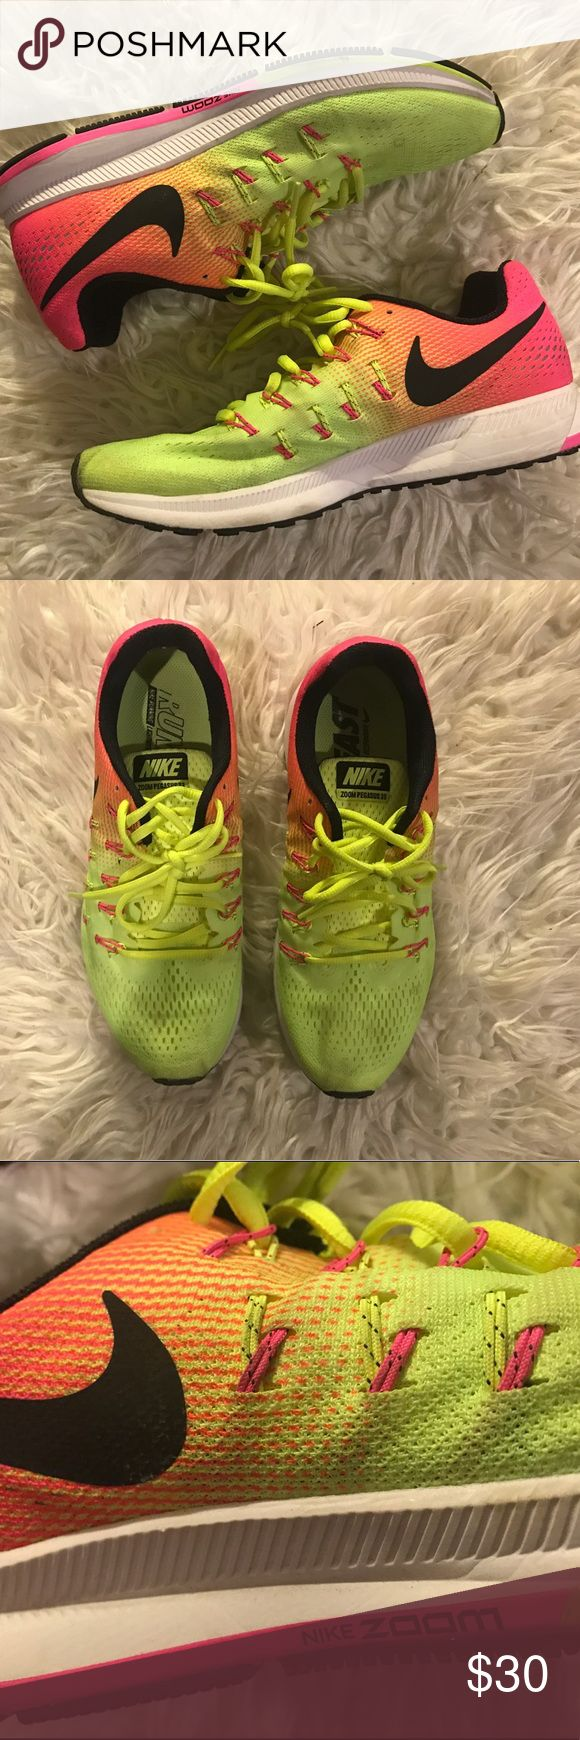 Multicolored Nike zoom sneakers Multi colored Nike zoom sneakers that fade from pink to neon. Nike Shoes Sneakers